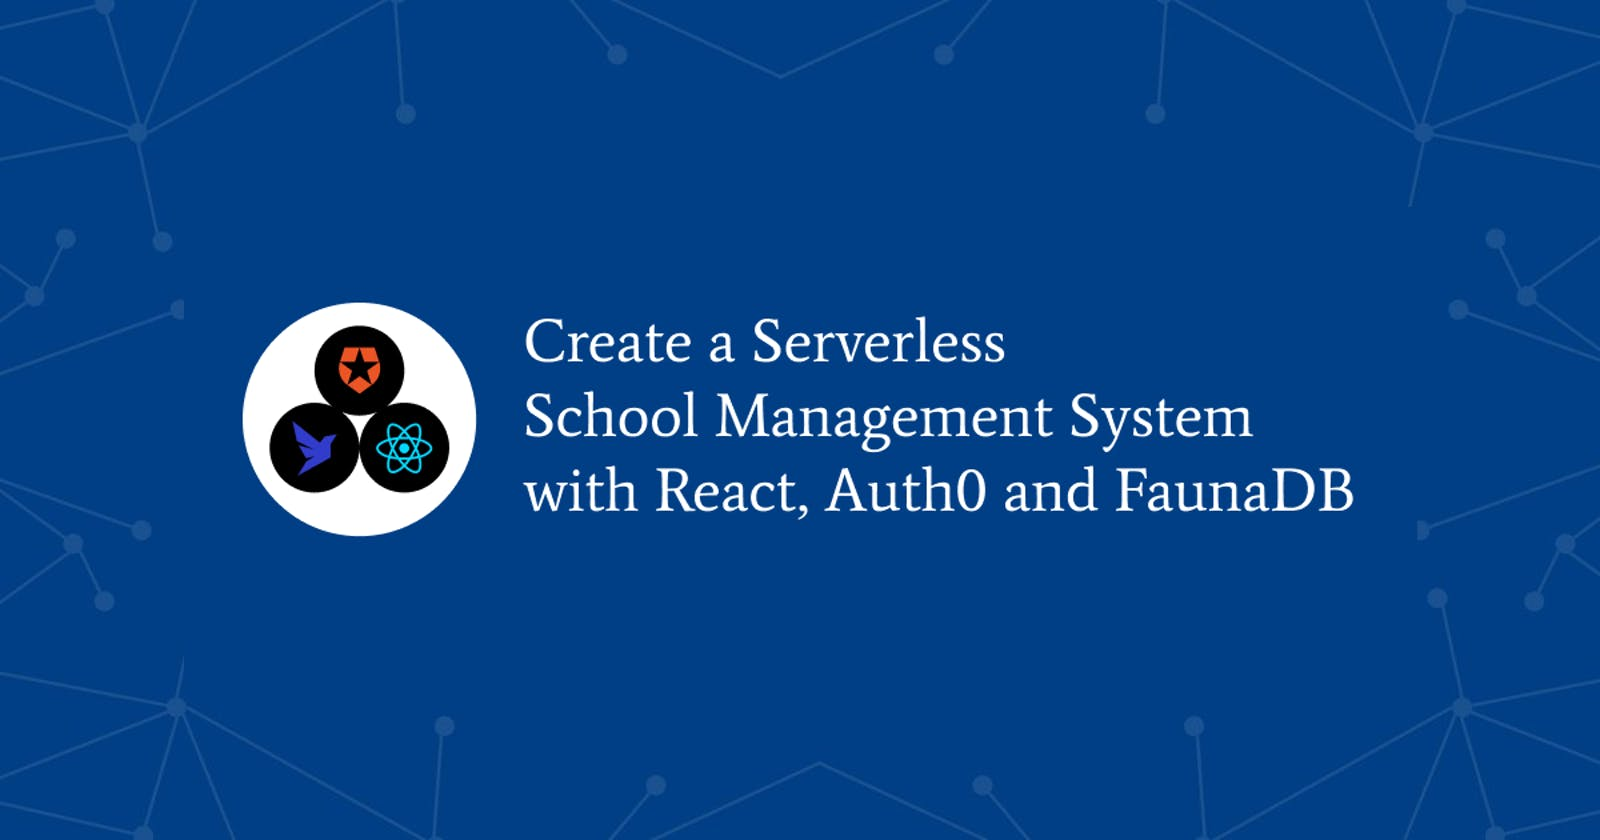 Create A Serverless School Management System with React, Auth0 and FaunaDB